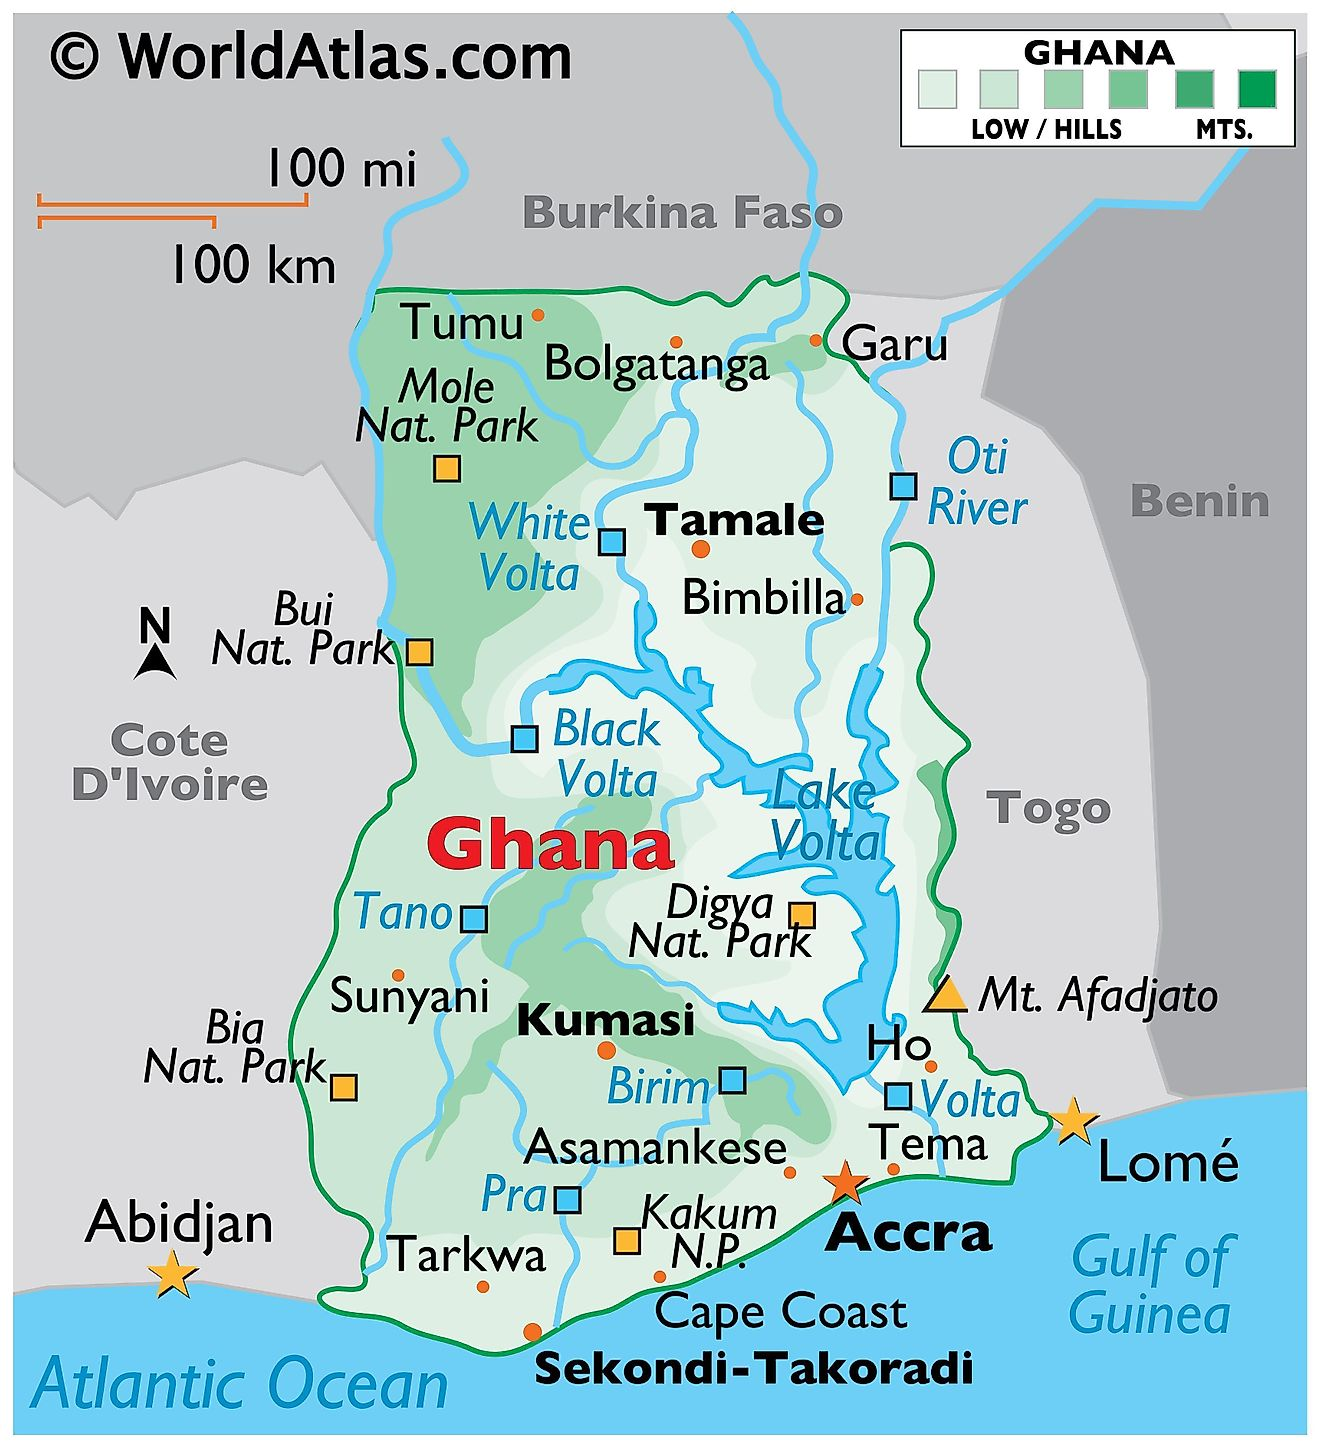 Physical Map of Ghana displaying the state boundaries, terrain, Lake Volta, extreme points, important cities, and more.